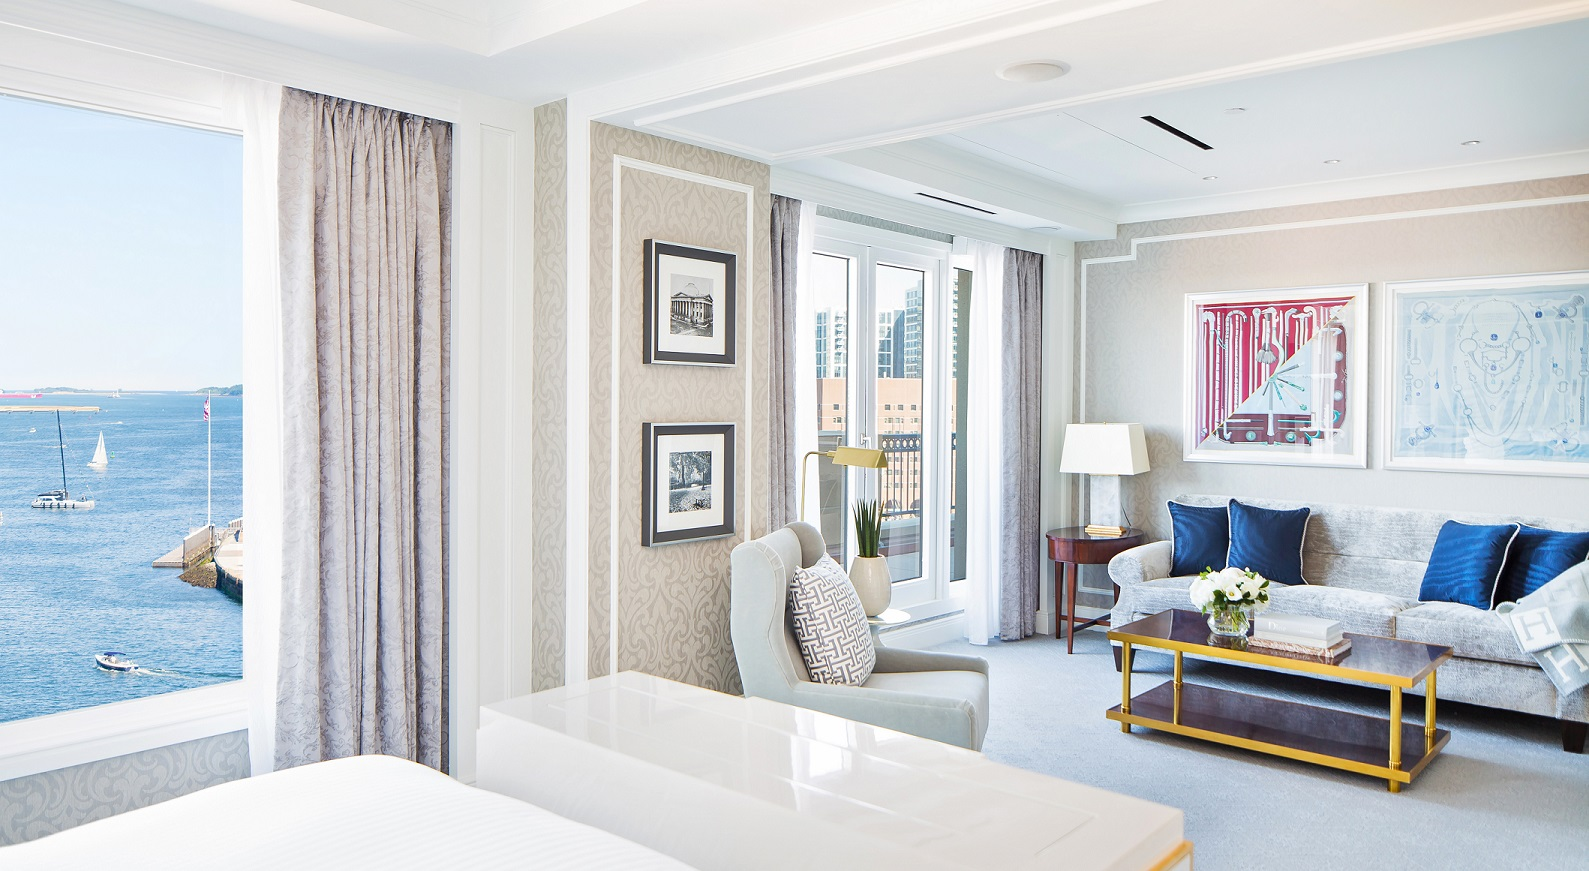 Living area of hotel suite on Boston Harbor